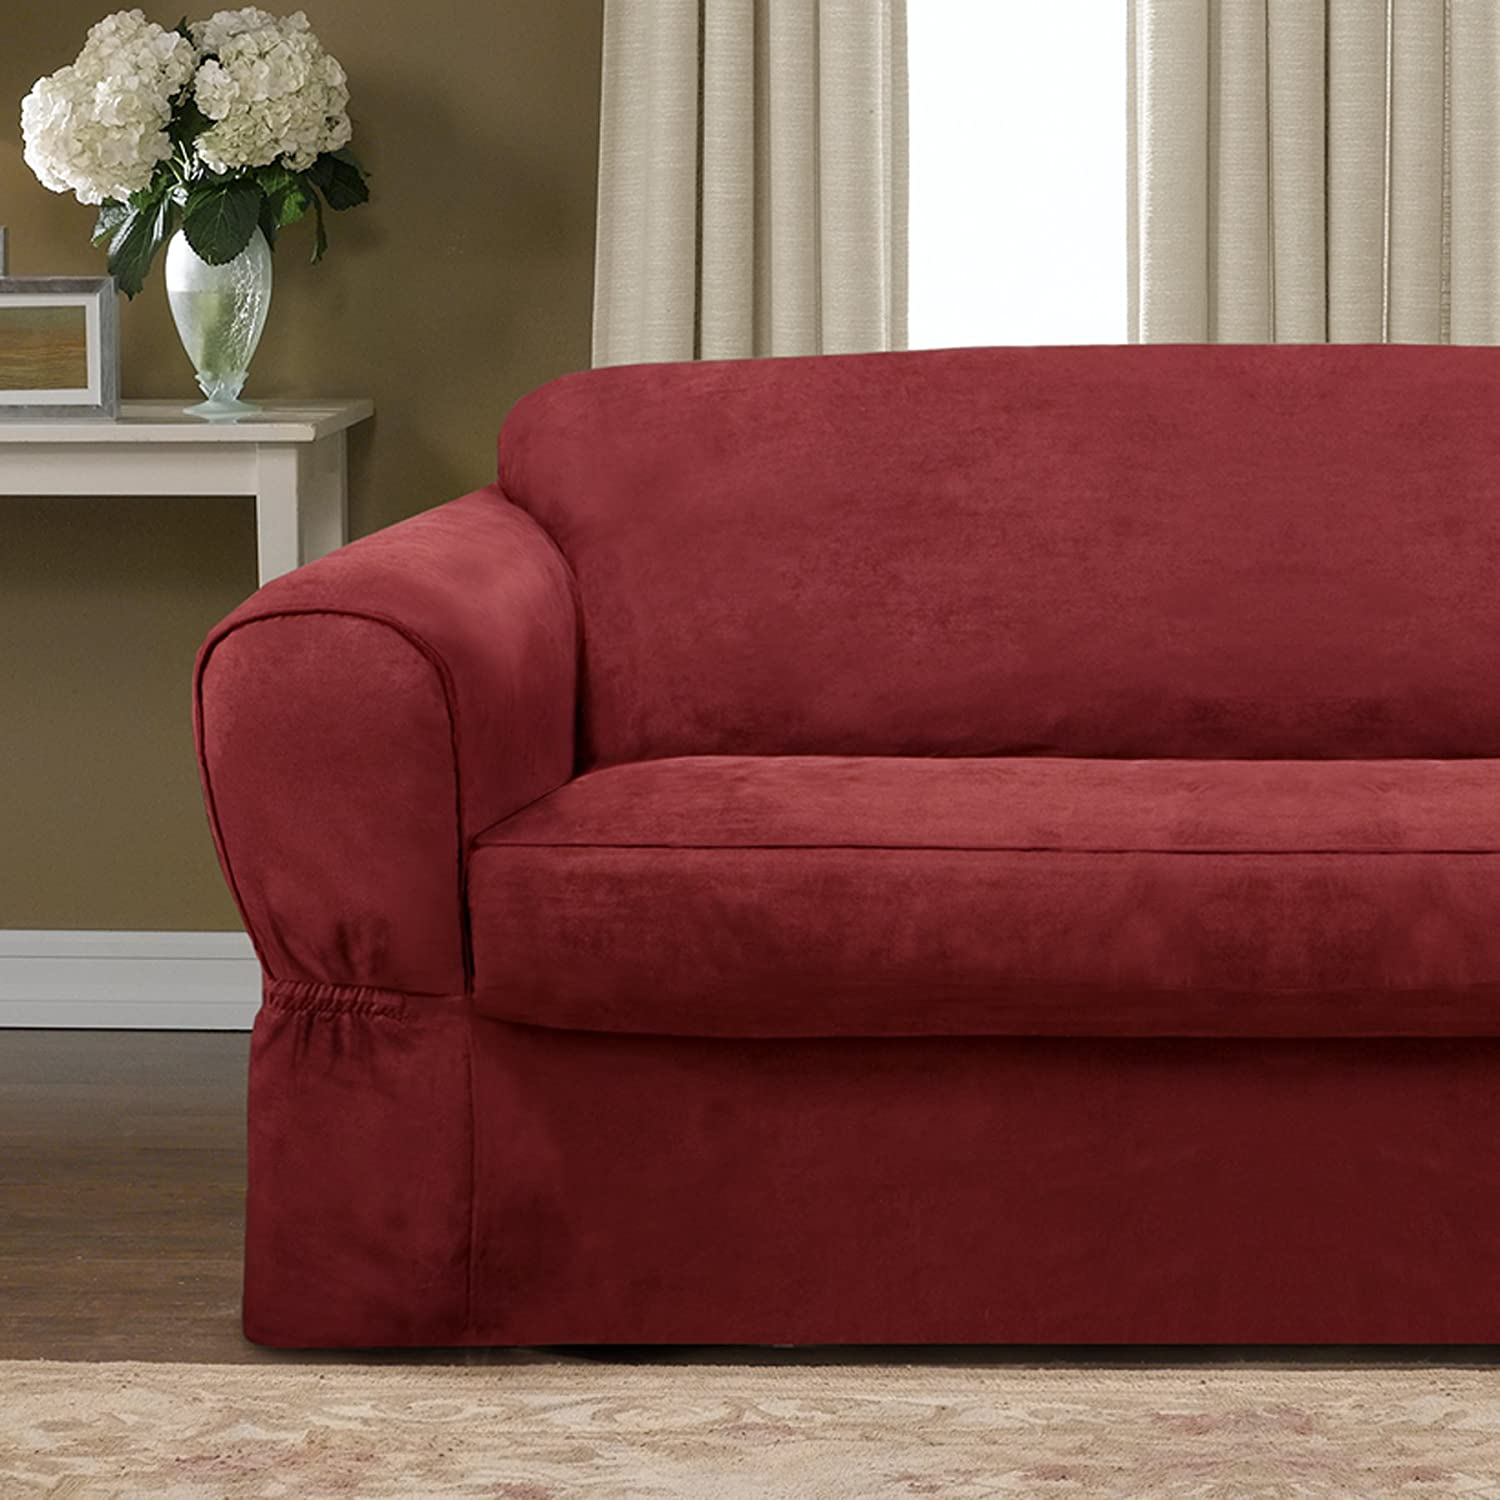 Amazon Maytex Piped Suede 2 Piece Sofa Slipcover Red Home